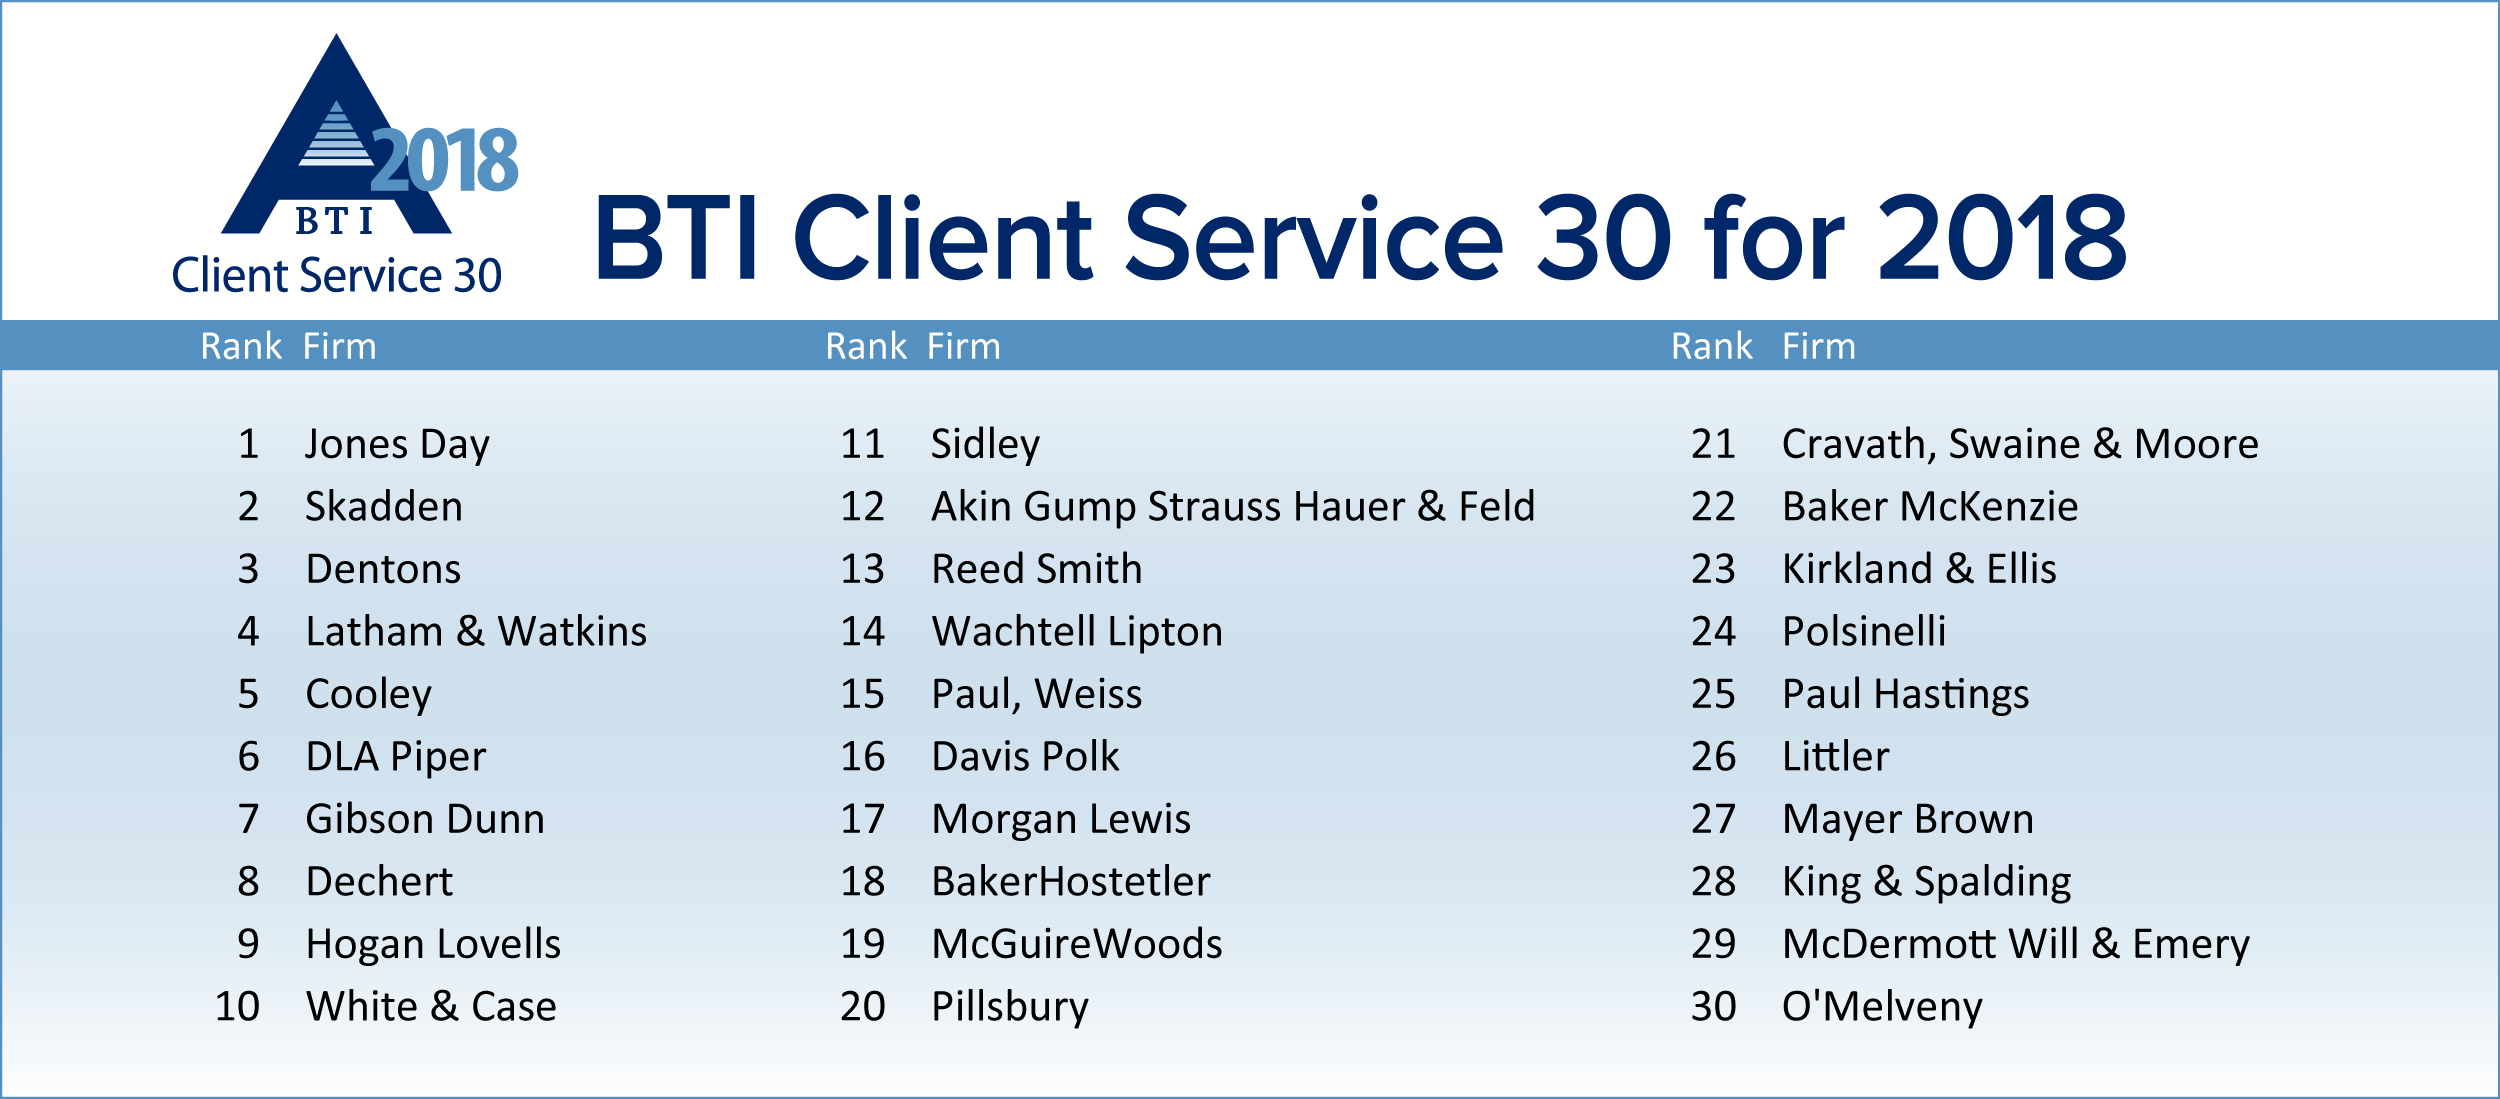 BTI Client Service 30 for 2018-01.png